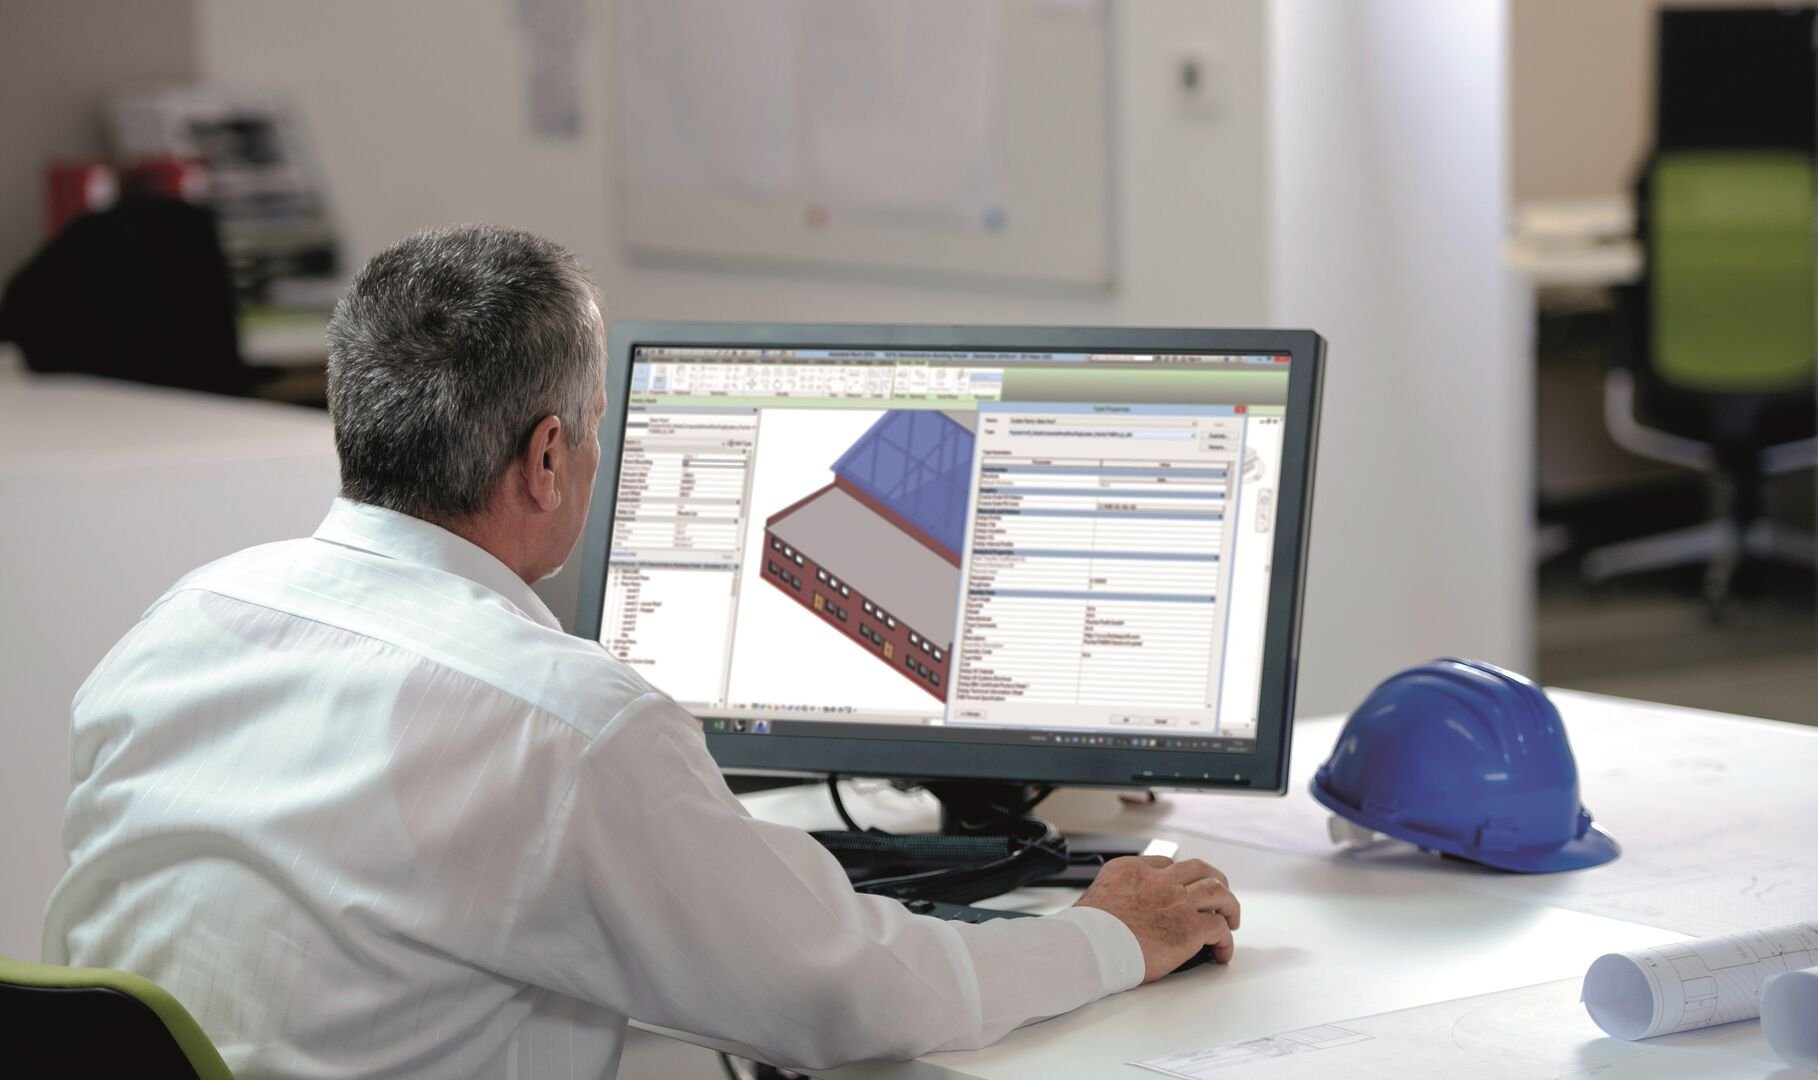 Man looking at screen with BIM models on